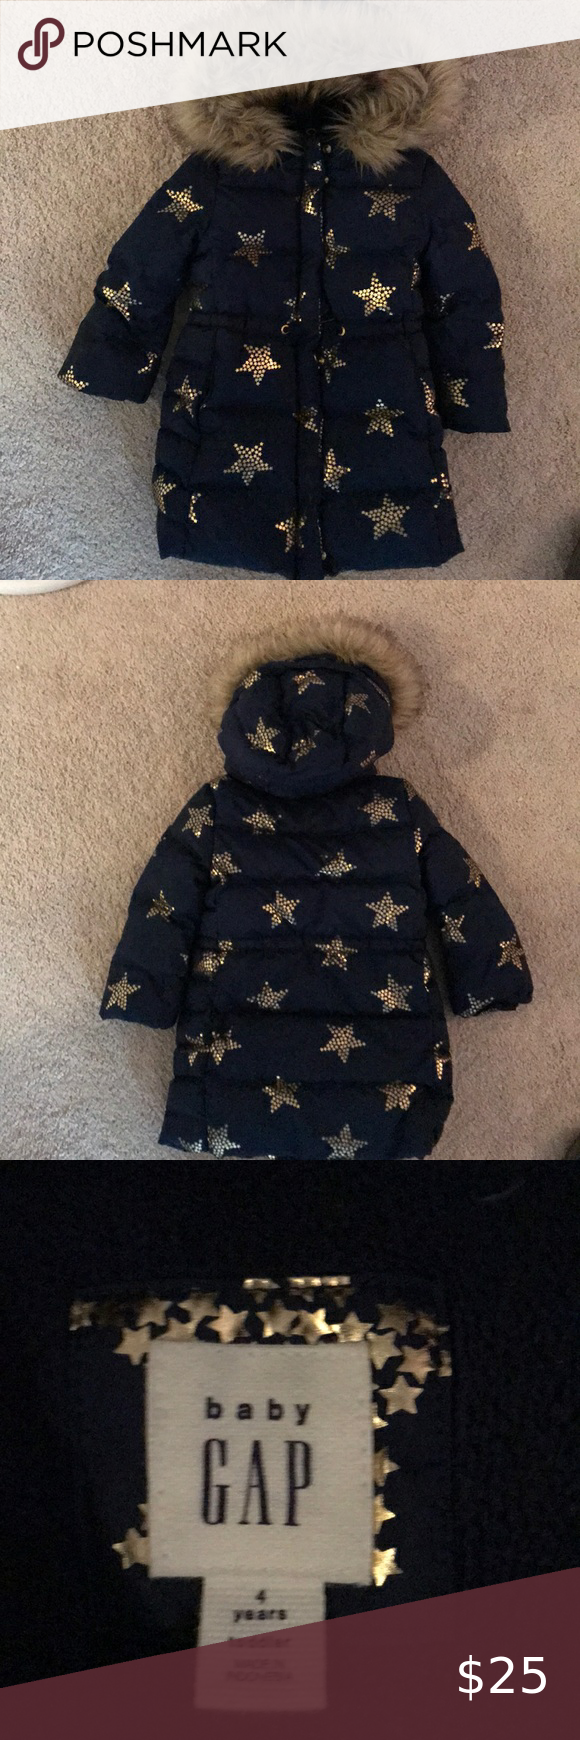 Gap Toddler Cold Control Max Puffer Jacket 2018 Gap 4t Cold Control Mac Puffer Jacket Water Resistant Used For 1 Winter In Gr In 2020 Toddler Cold Baby Gap Gap Jacket [ 1740 x 580 Pixel ]